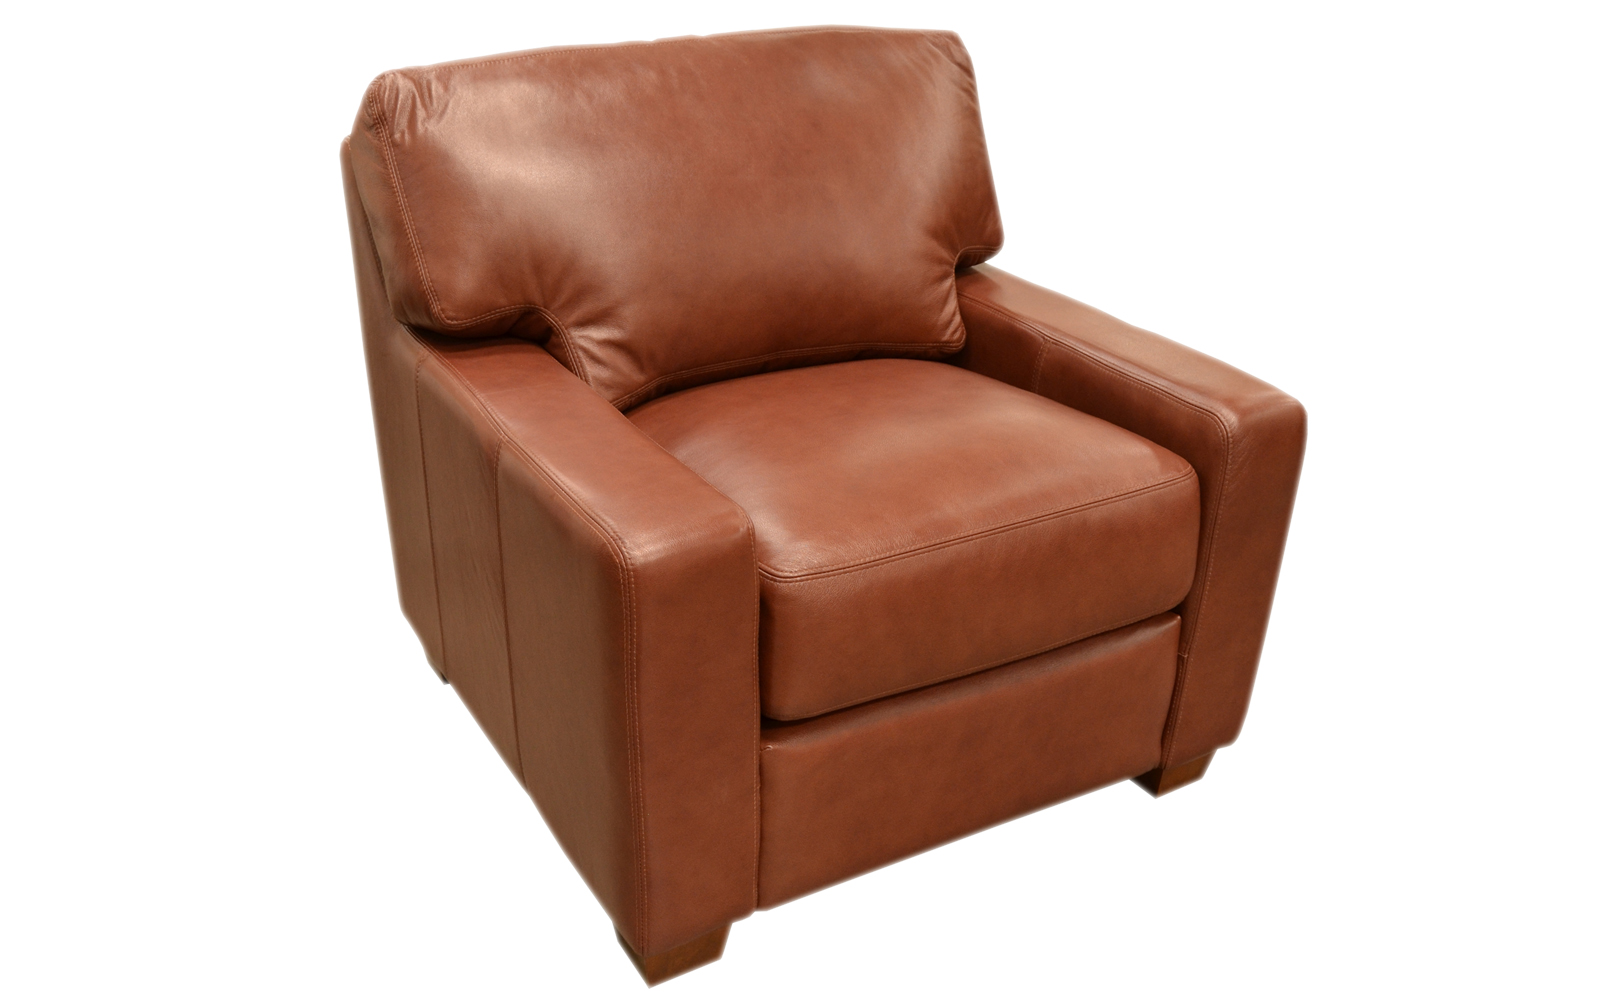 Albany Chair Arizona Leather Interiors